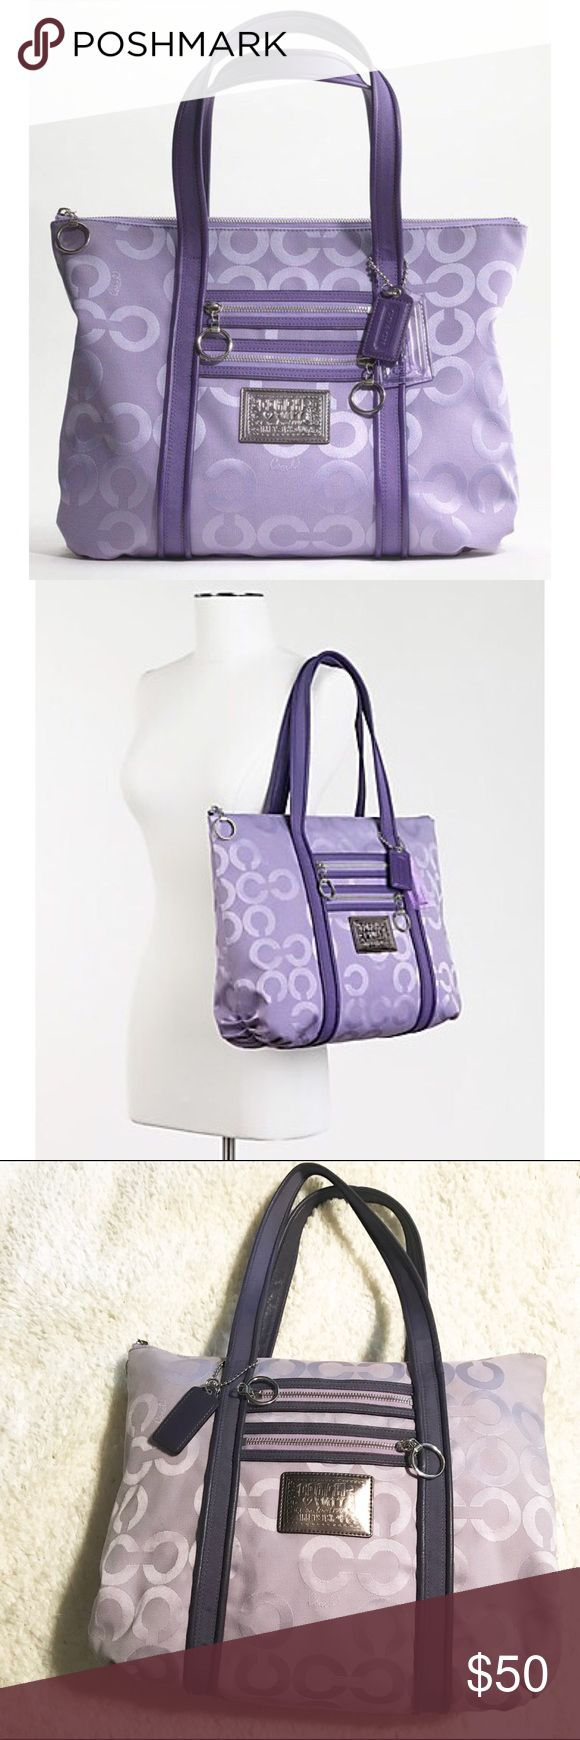 Coach Poppy OP Art Glam Tote in Lavender This is a Coach Poppy OP Art Glam Tote in Lavender. Well loved, has some yellowing, mostly in the corners as shown. A couple of discoloration marks near the logo as shown. The interior has several pen marks. Leather on handles in good condition, no wear or flaws. Very small and slight knick on Coach hang tag back corner. Feel free to ask any questions before purchasing or placing an offer. Coach Bags Totes